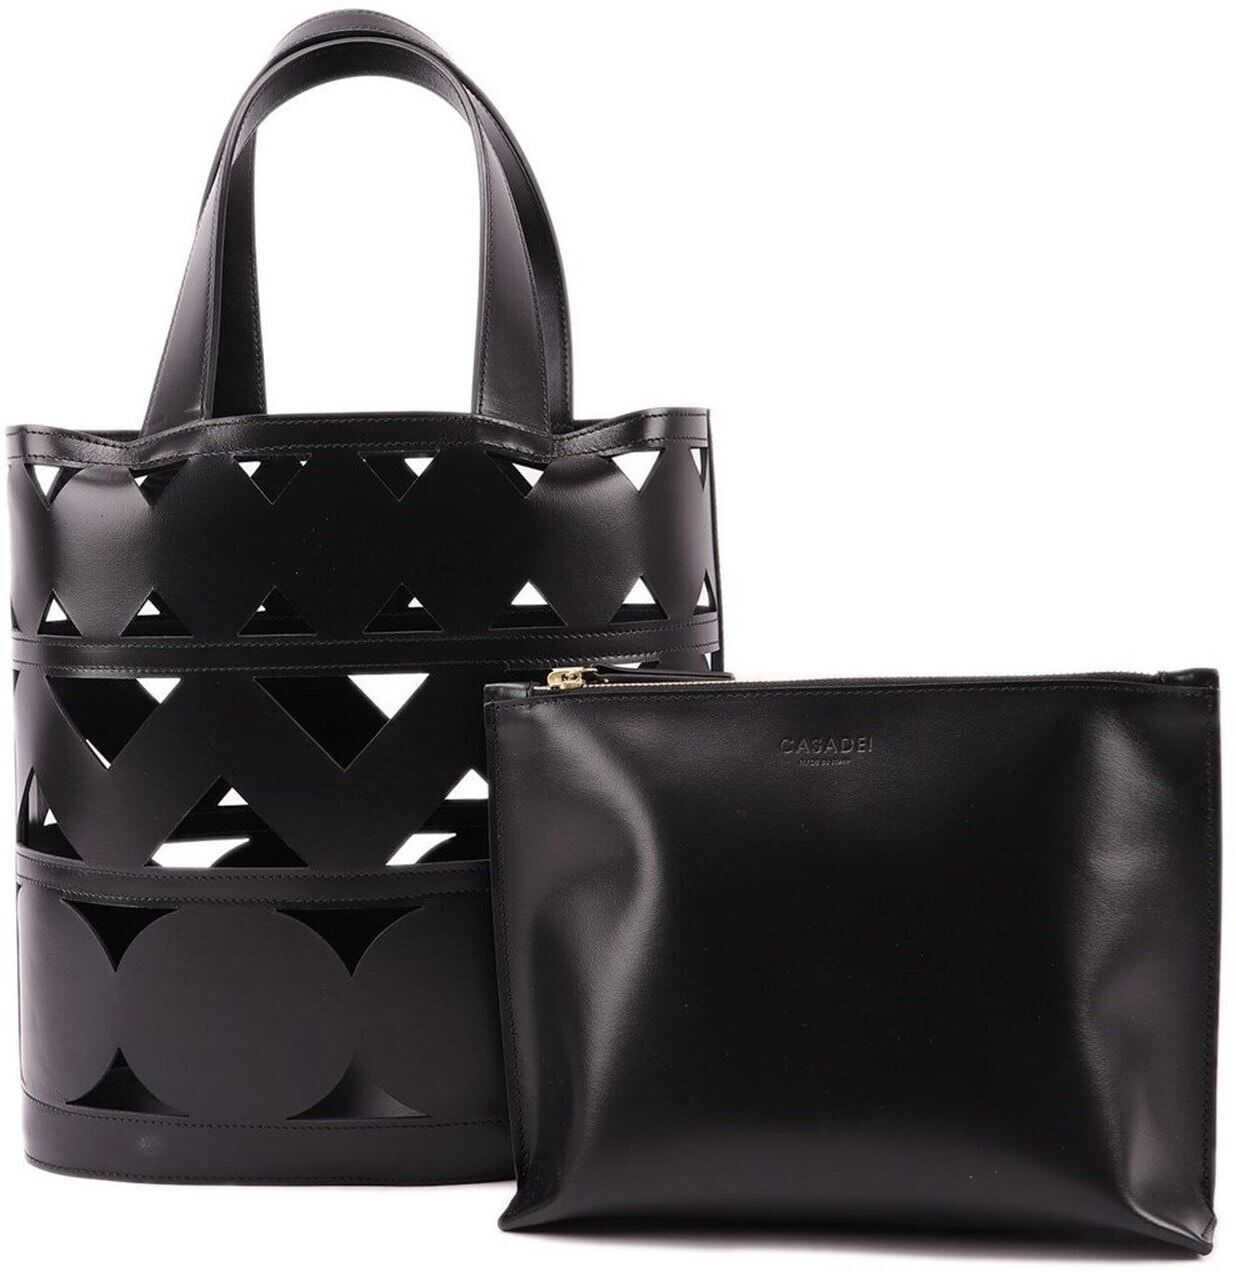 Casadei Malika Perforated Leather Bucket Bag Black